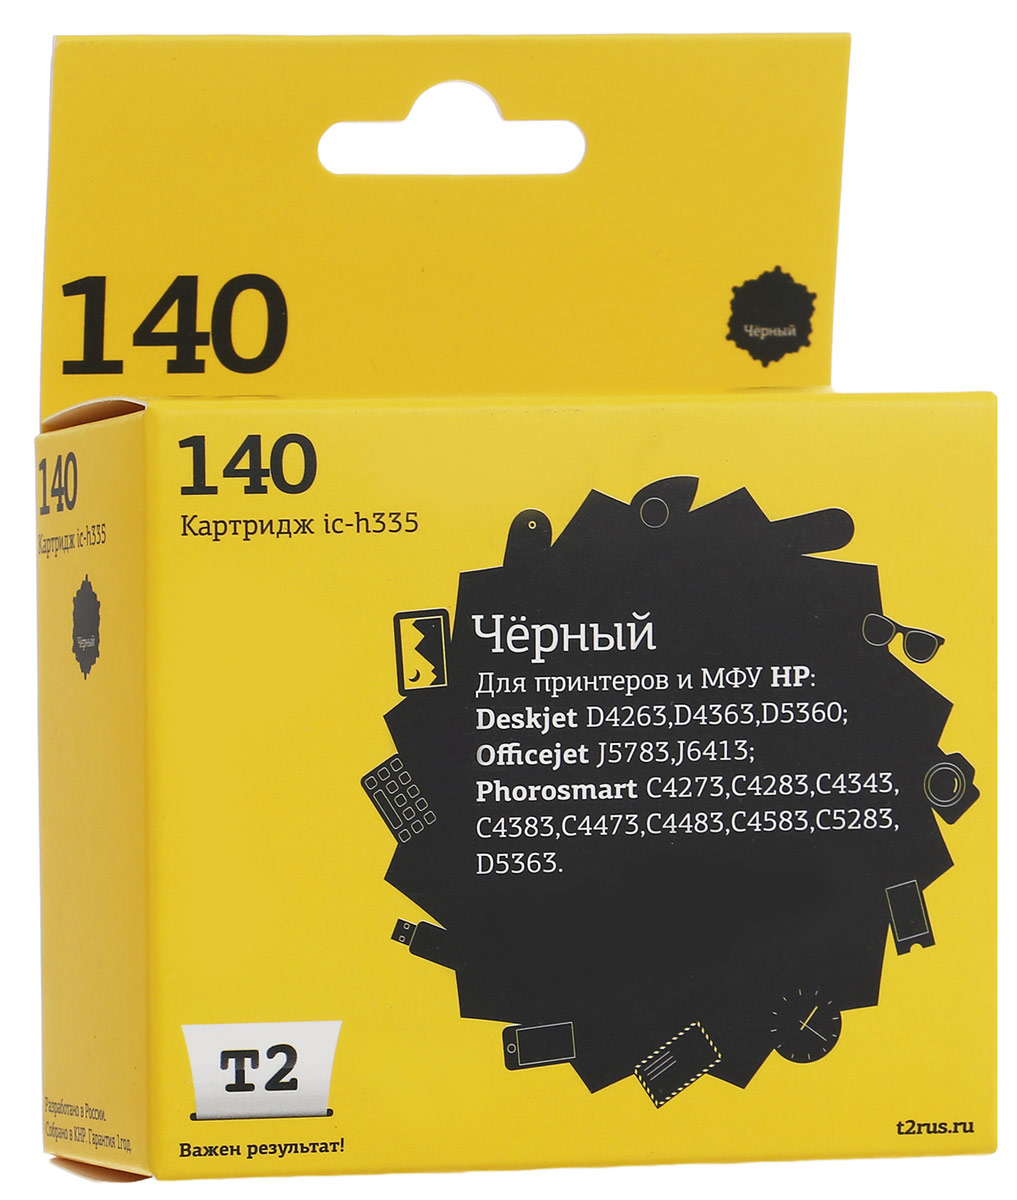 T2 IC-H335 картридж для HP Deskjet D4263/D5360/Officejet J5783/J6413/Photosmart C4273 (№140), Black картридж с чернилами compatible for hp 140 xl hp hp deskjet 5363 d4263 officejet 6413 j5783 photosmart c4283 c4343 c5283 d5363